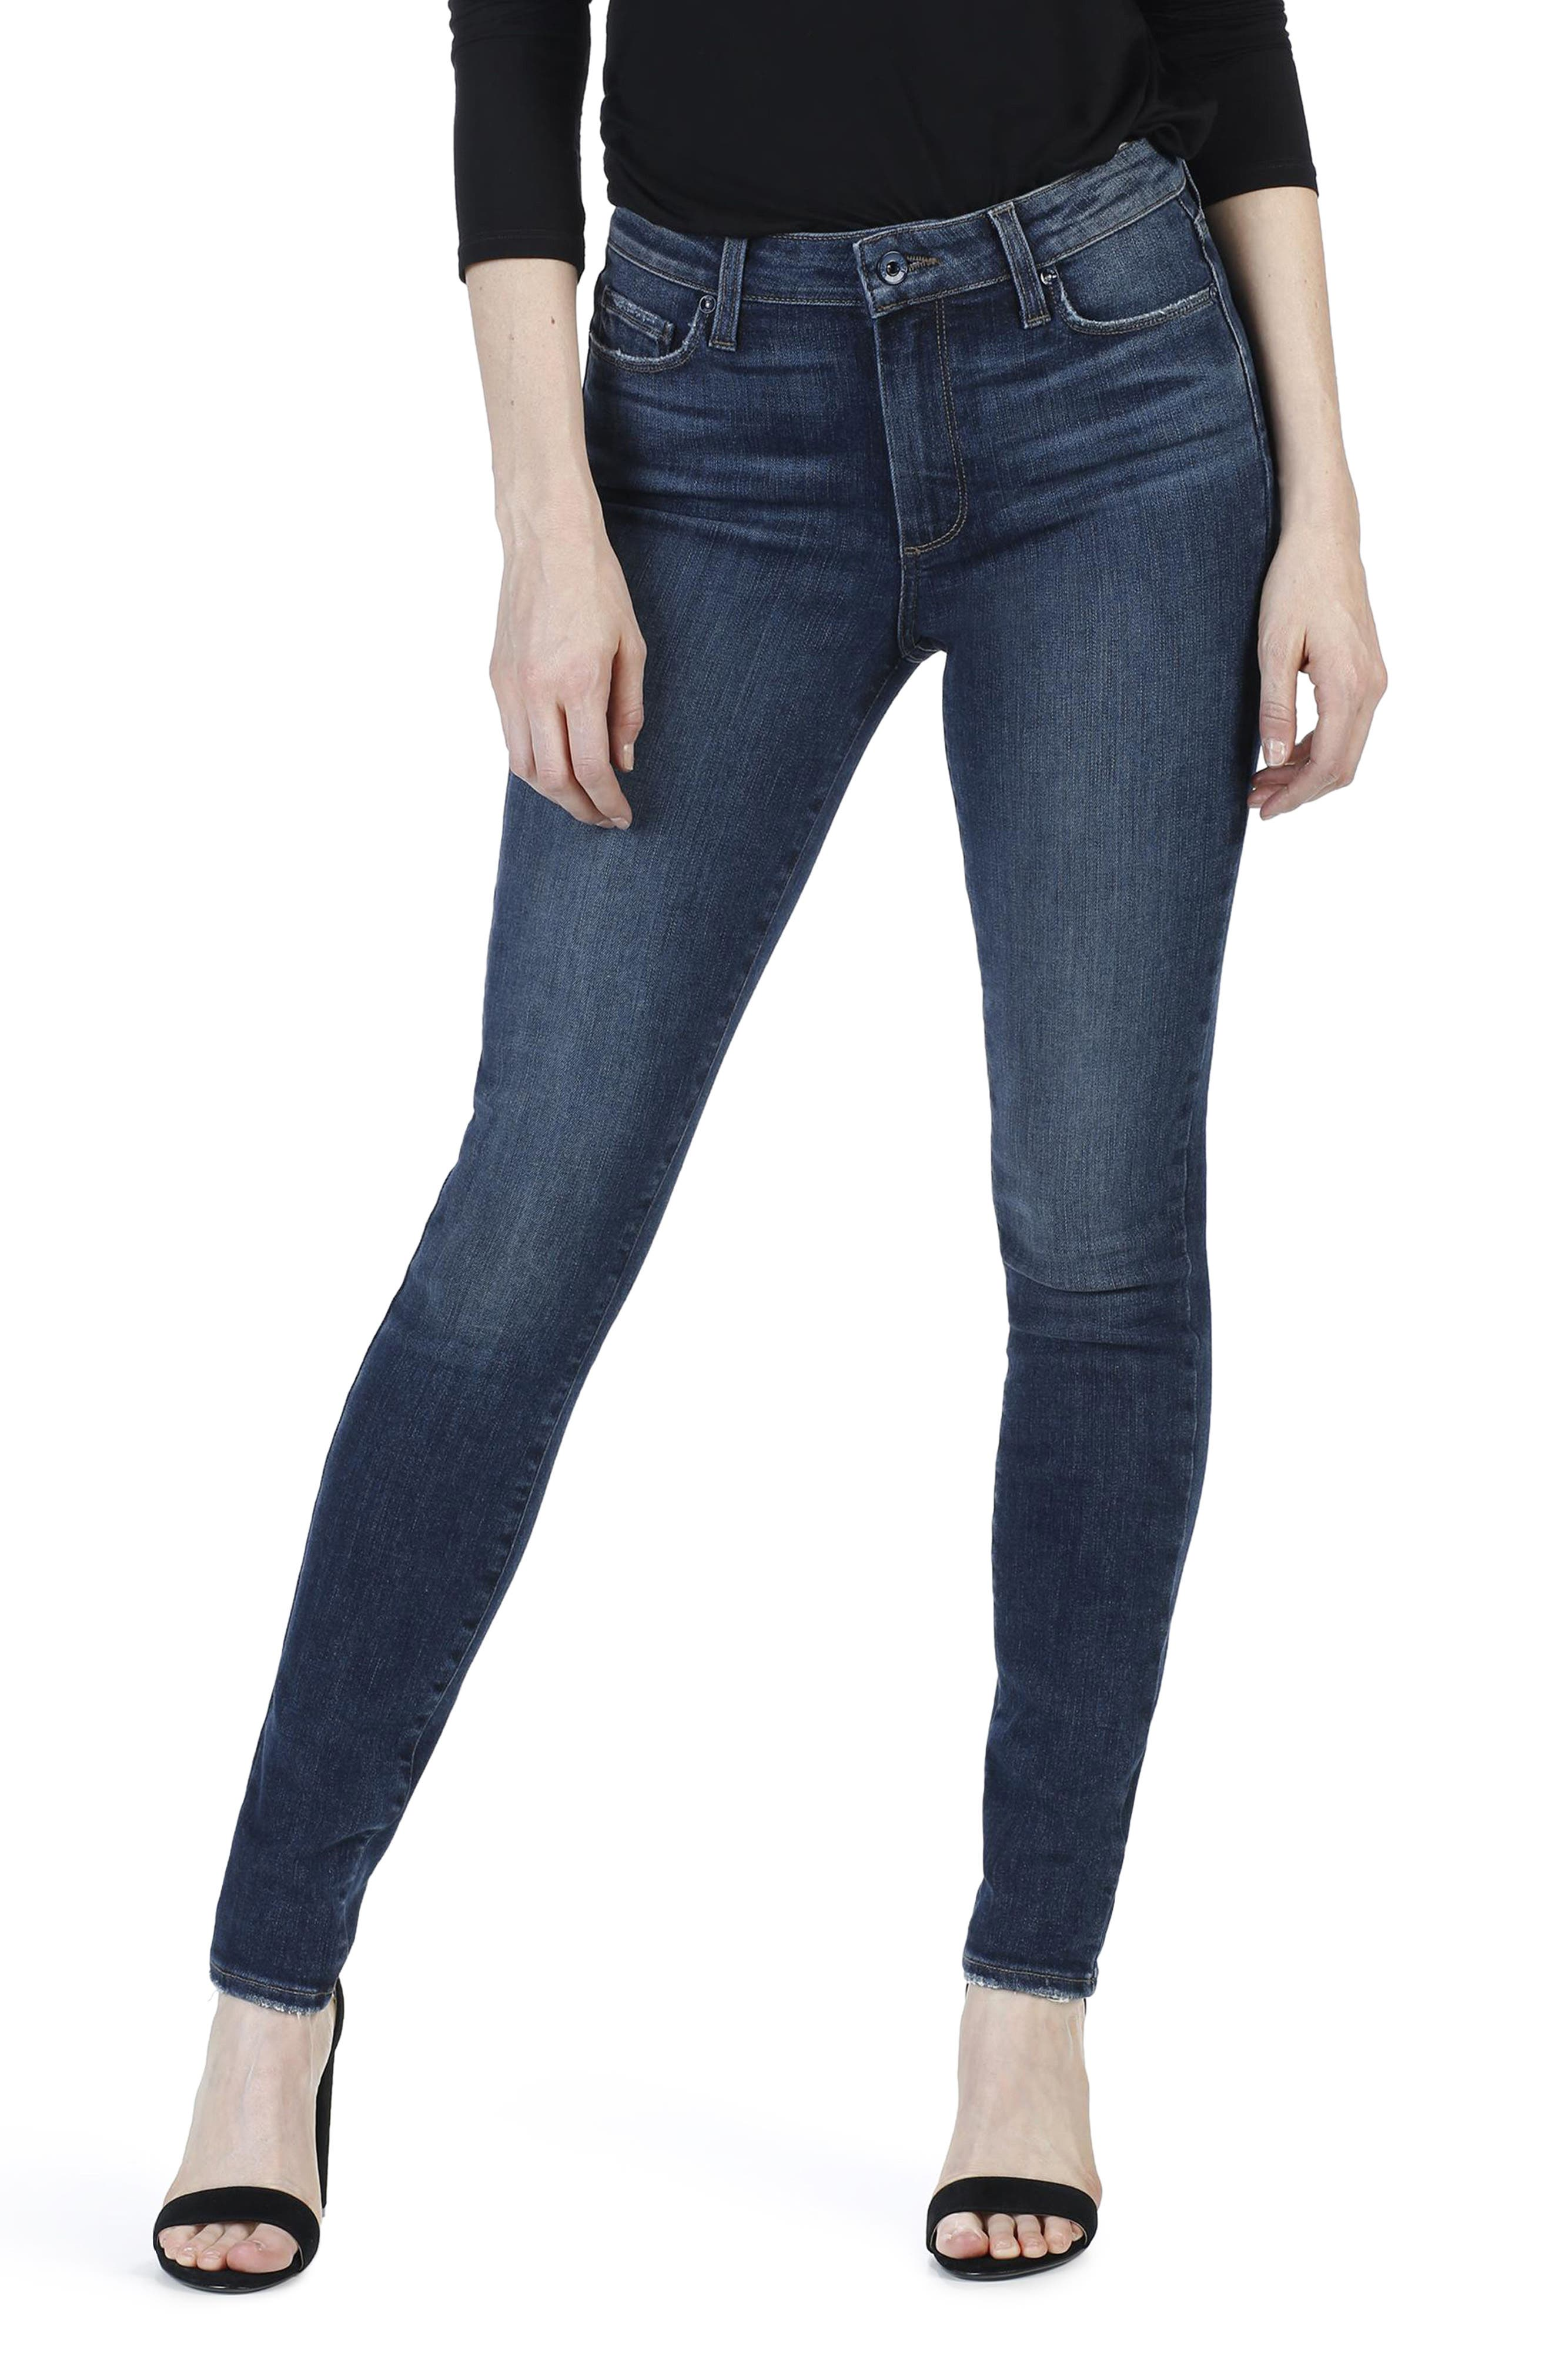 Transcend - Hoxton High Waist Ultra Skinny Jeans,                         Main,                         color, Percy